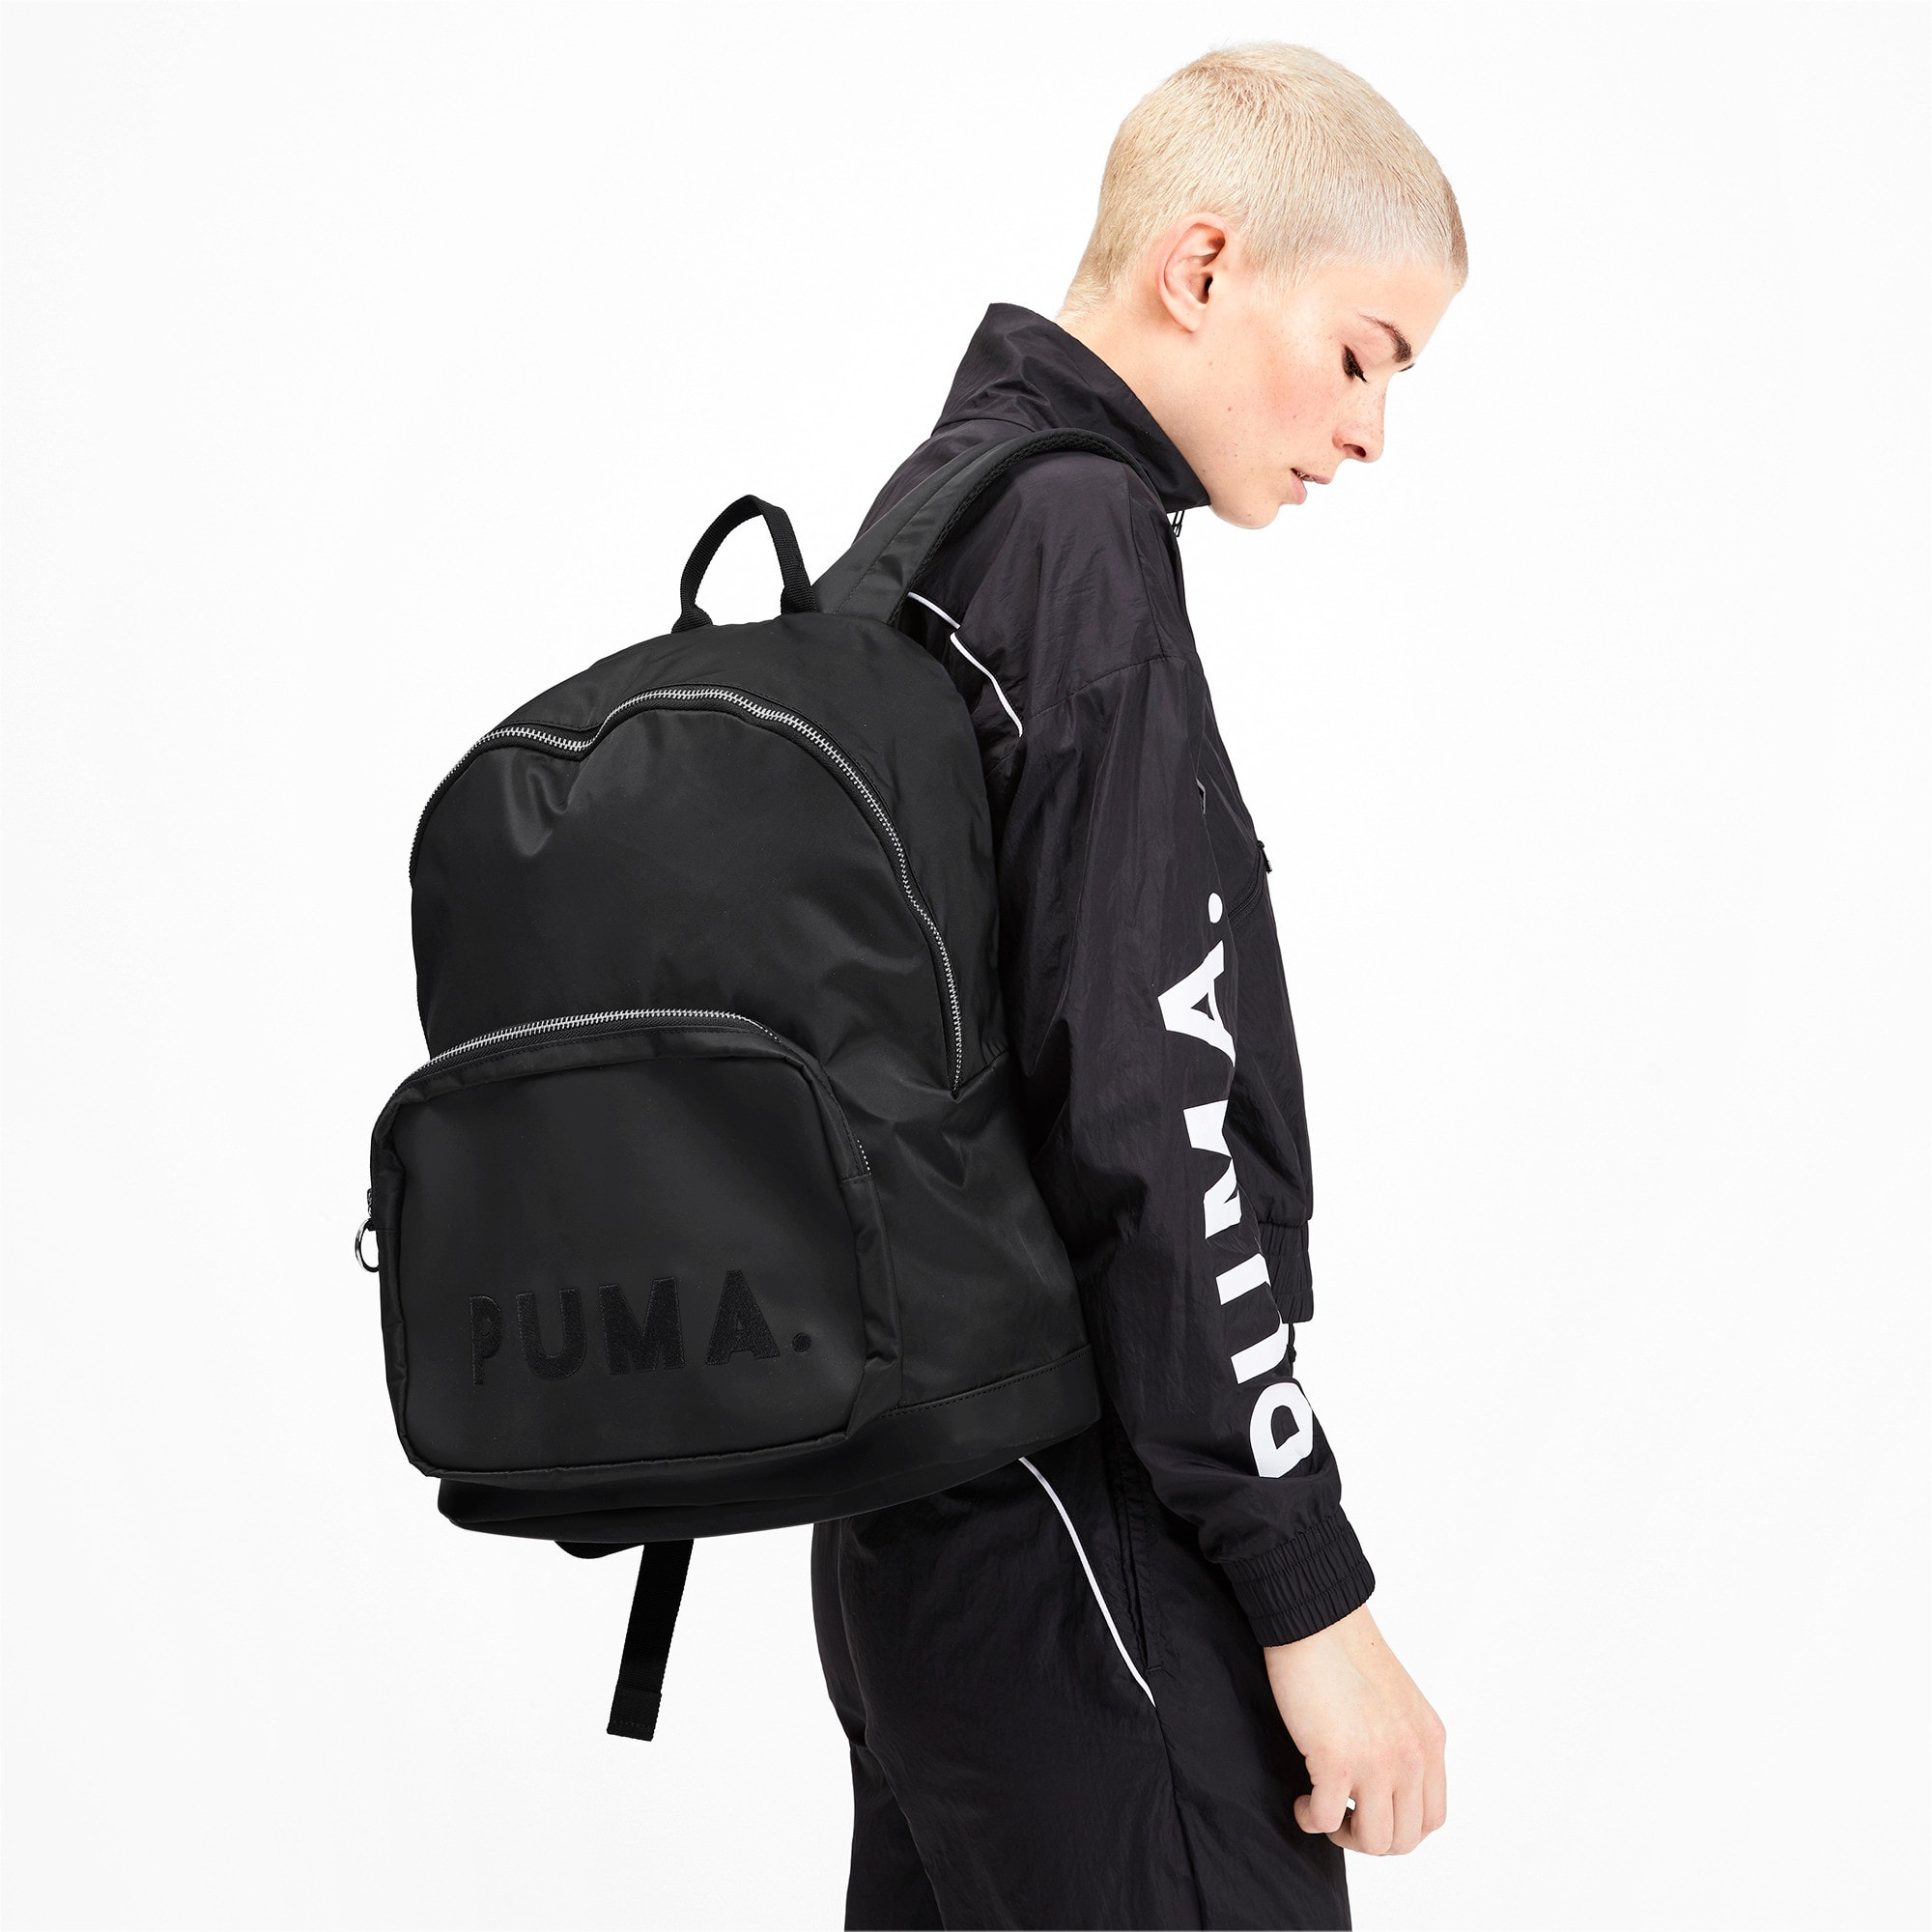 Thumbnail 2 of Originals Trend Backpack, Puma Black, medium